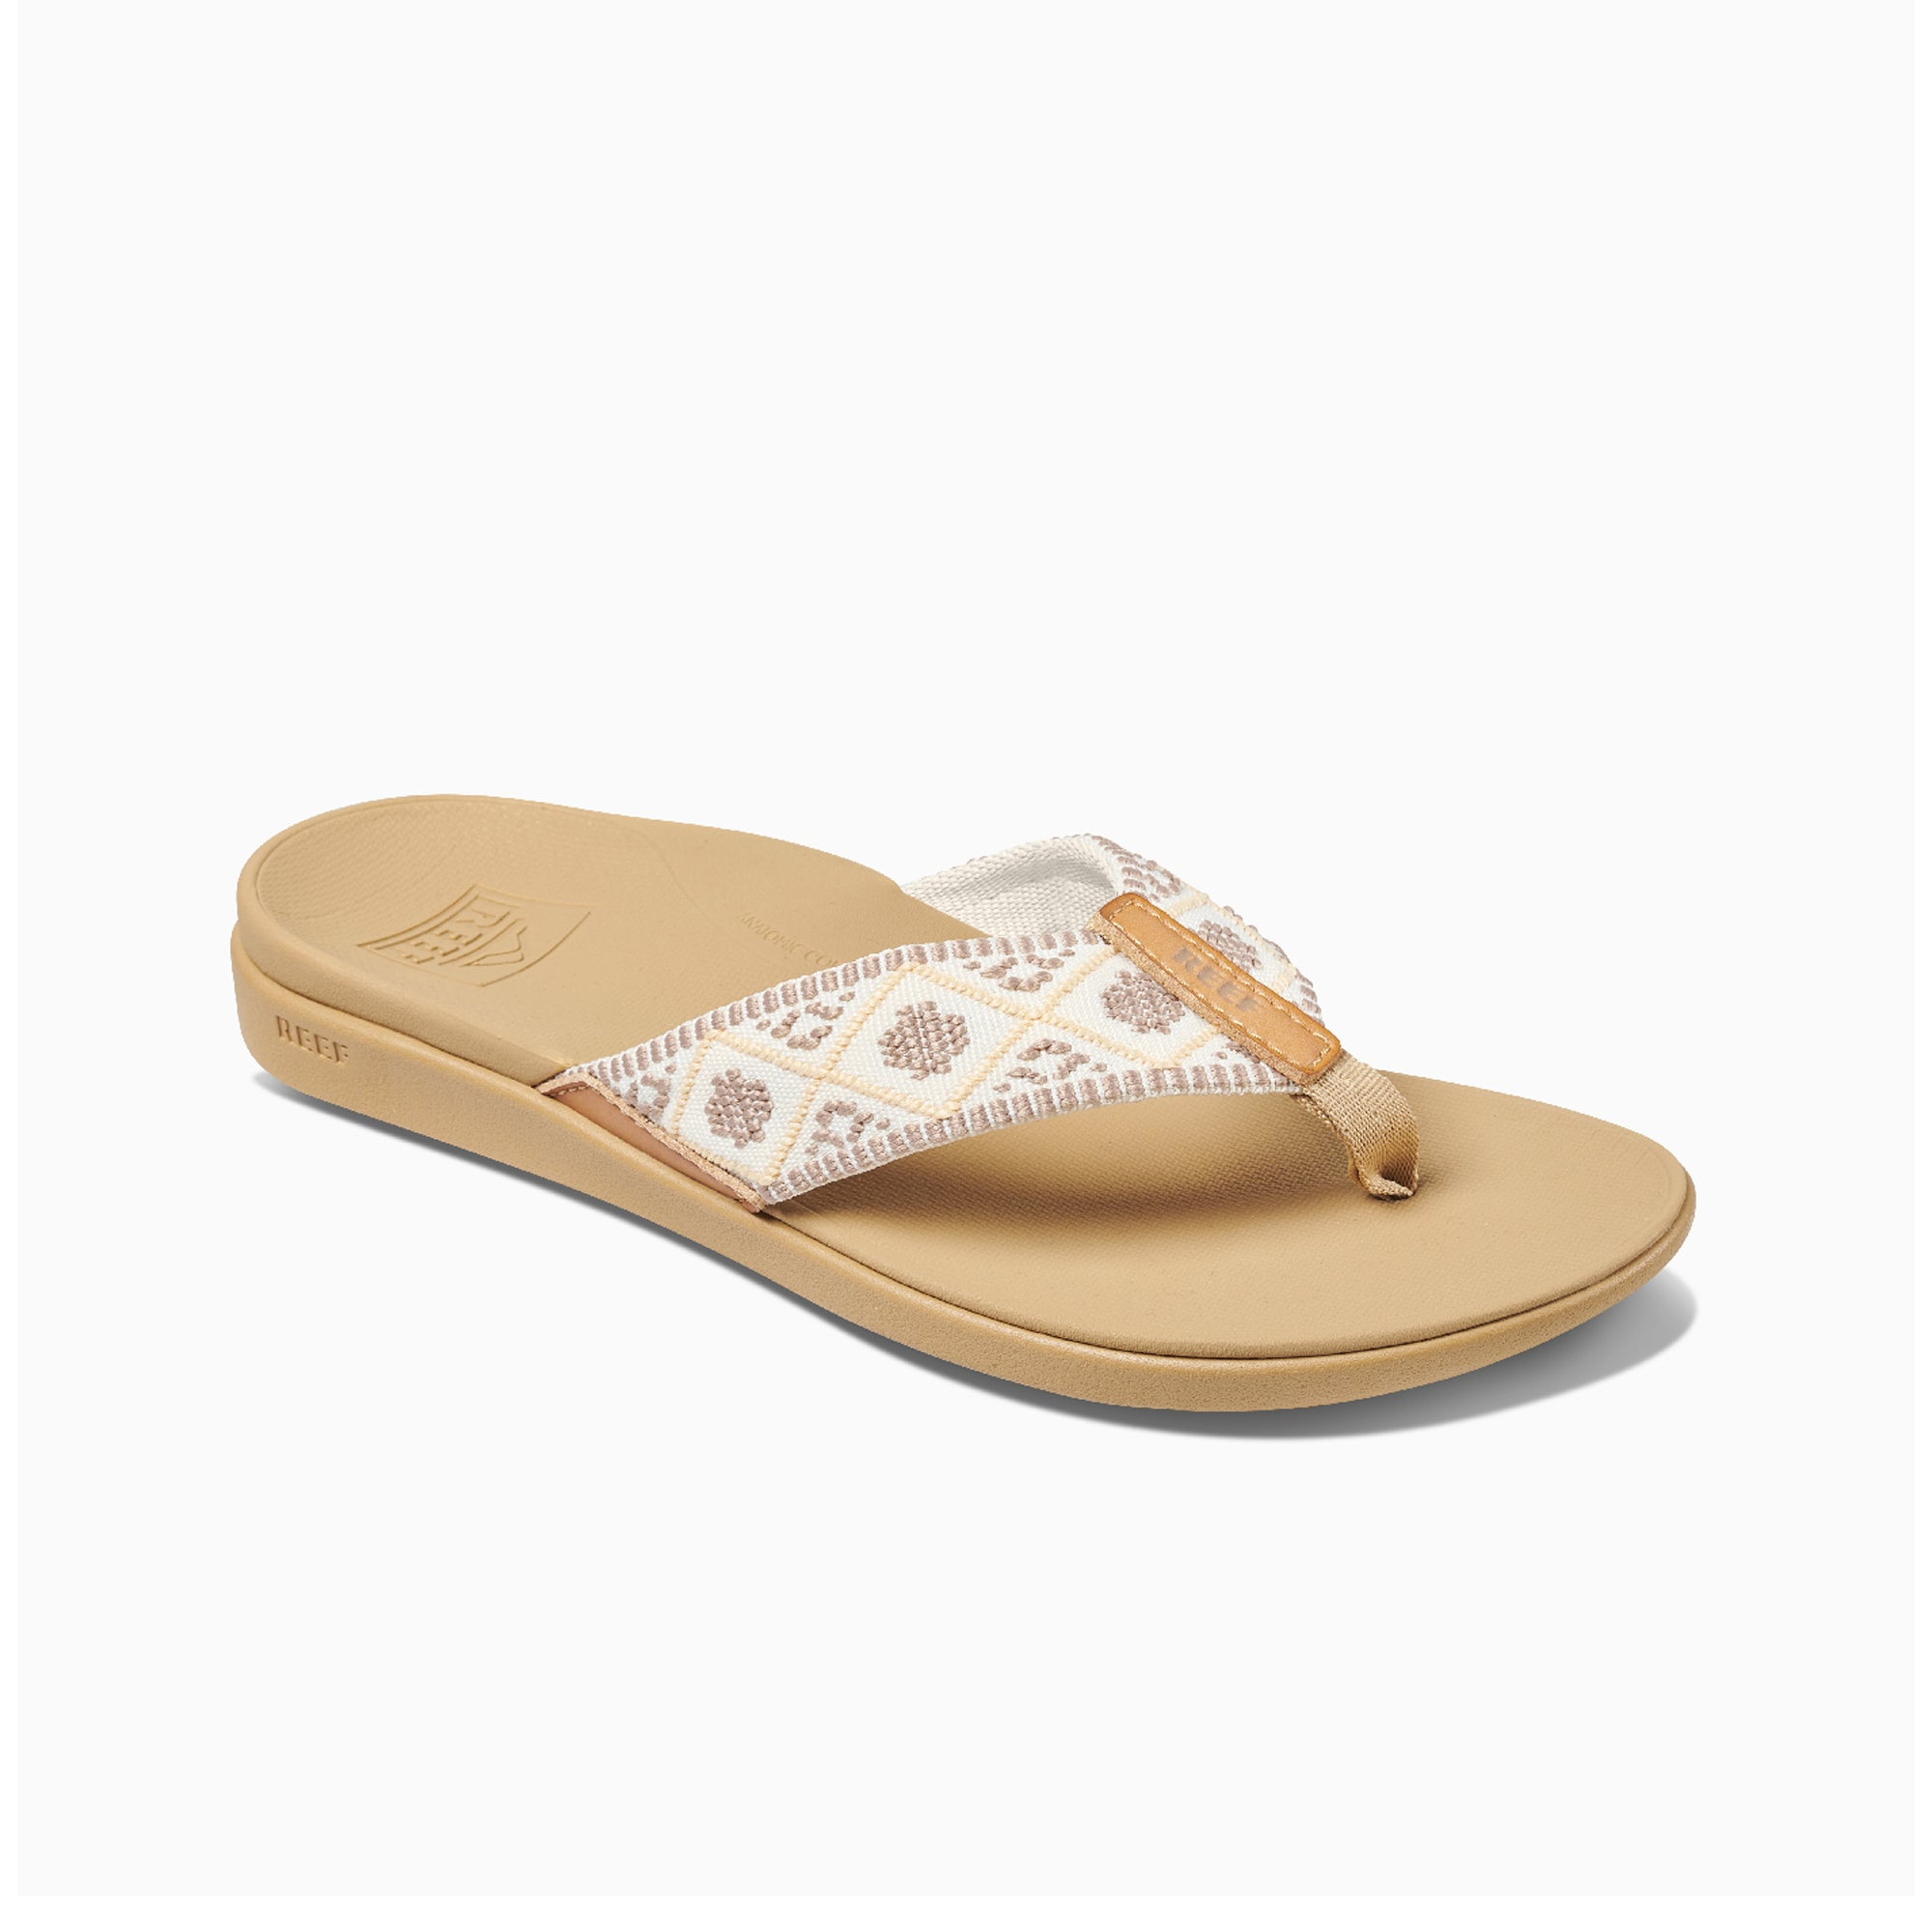 Reef Ortho Woven Women's Sandals